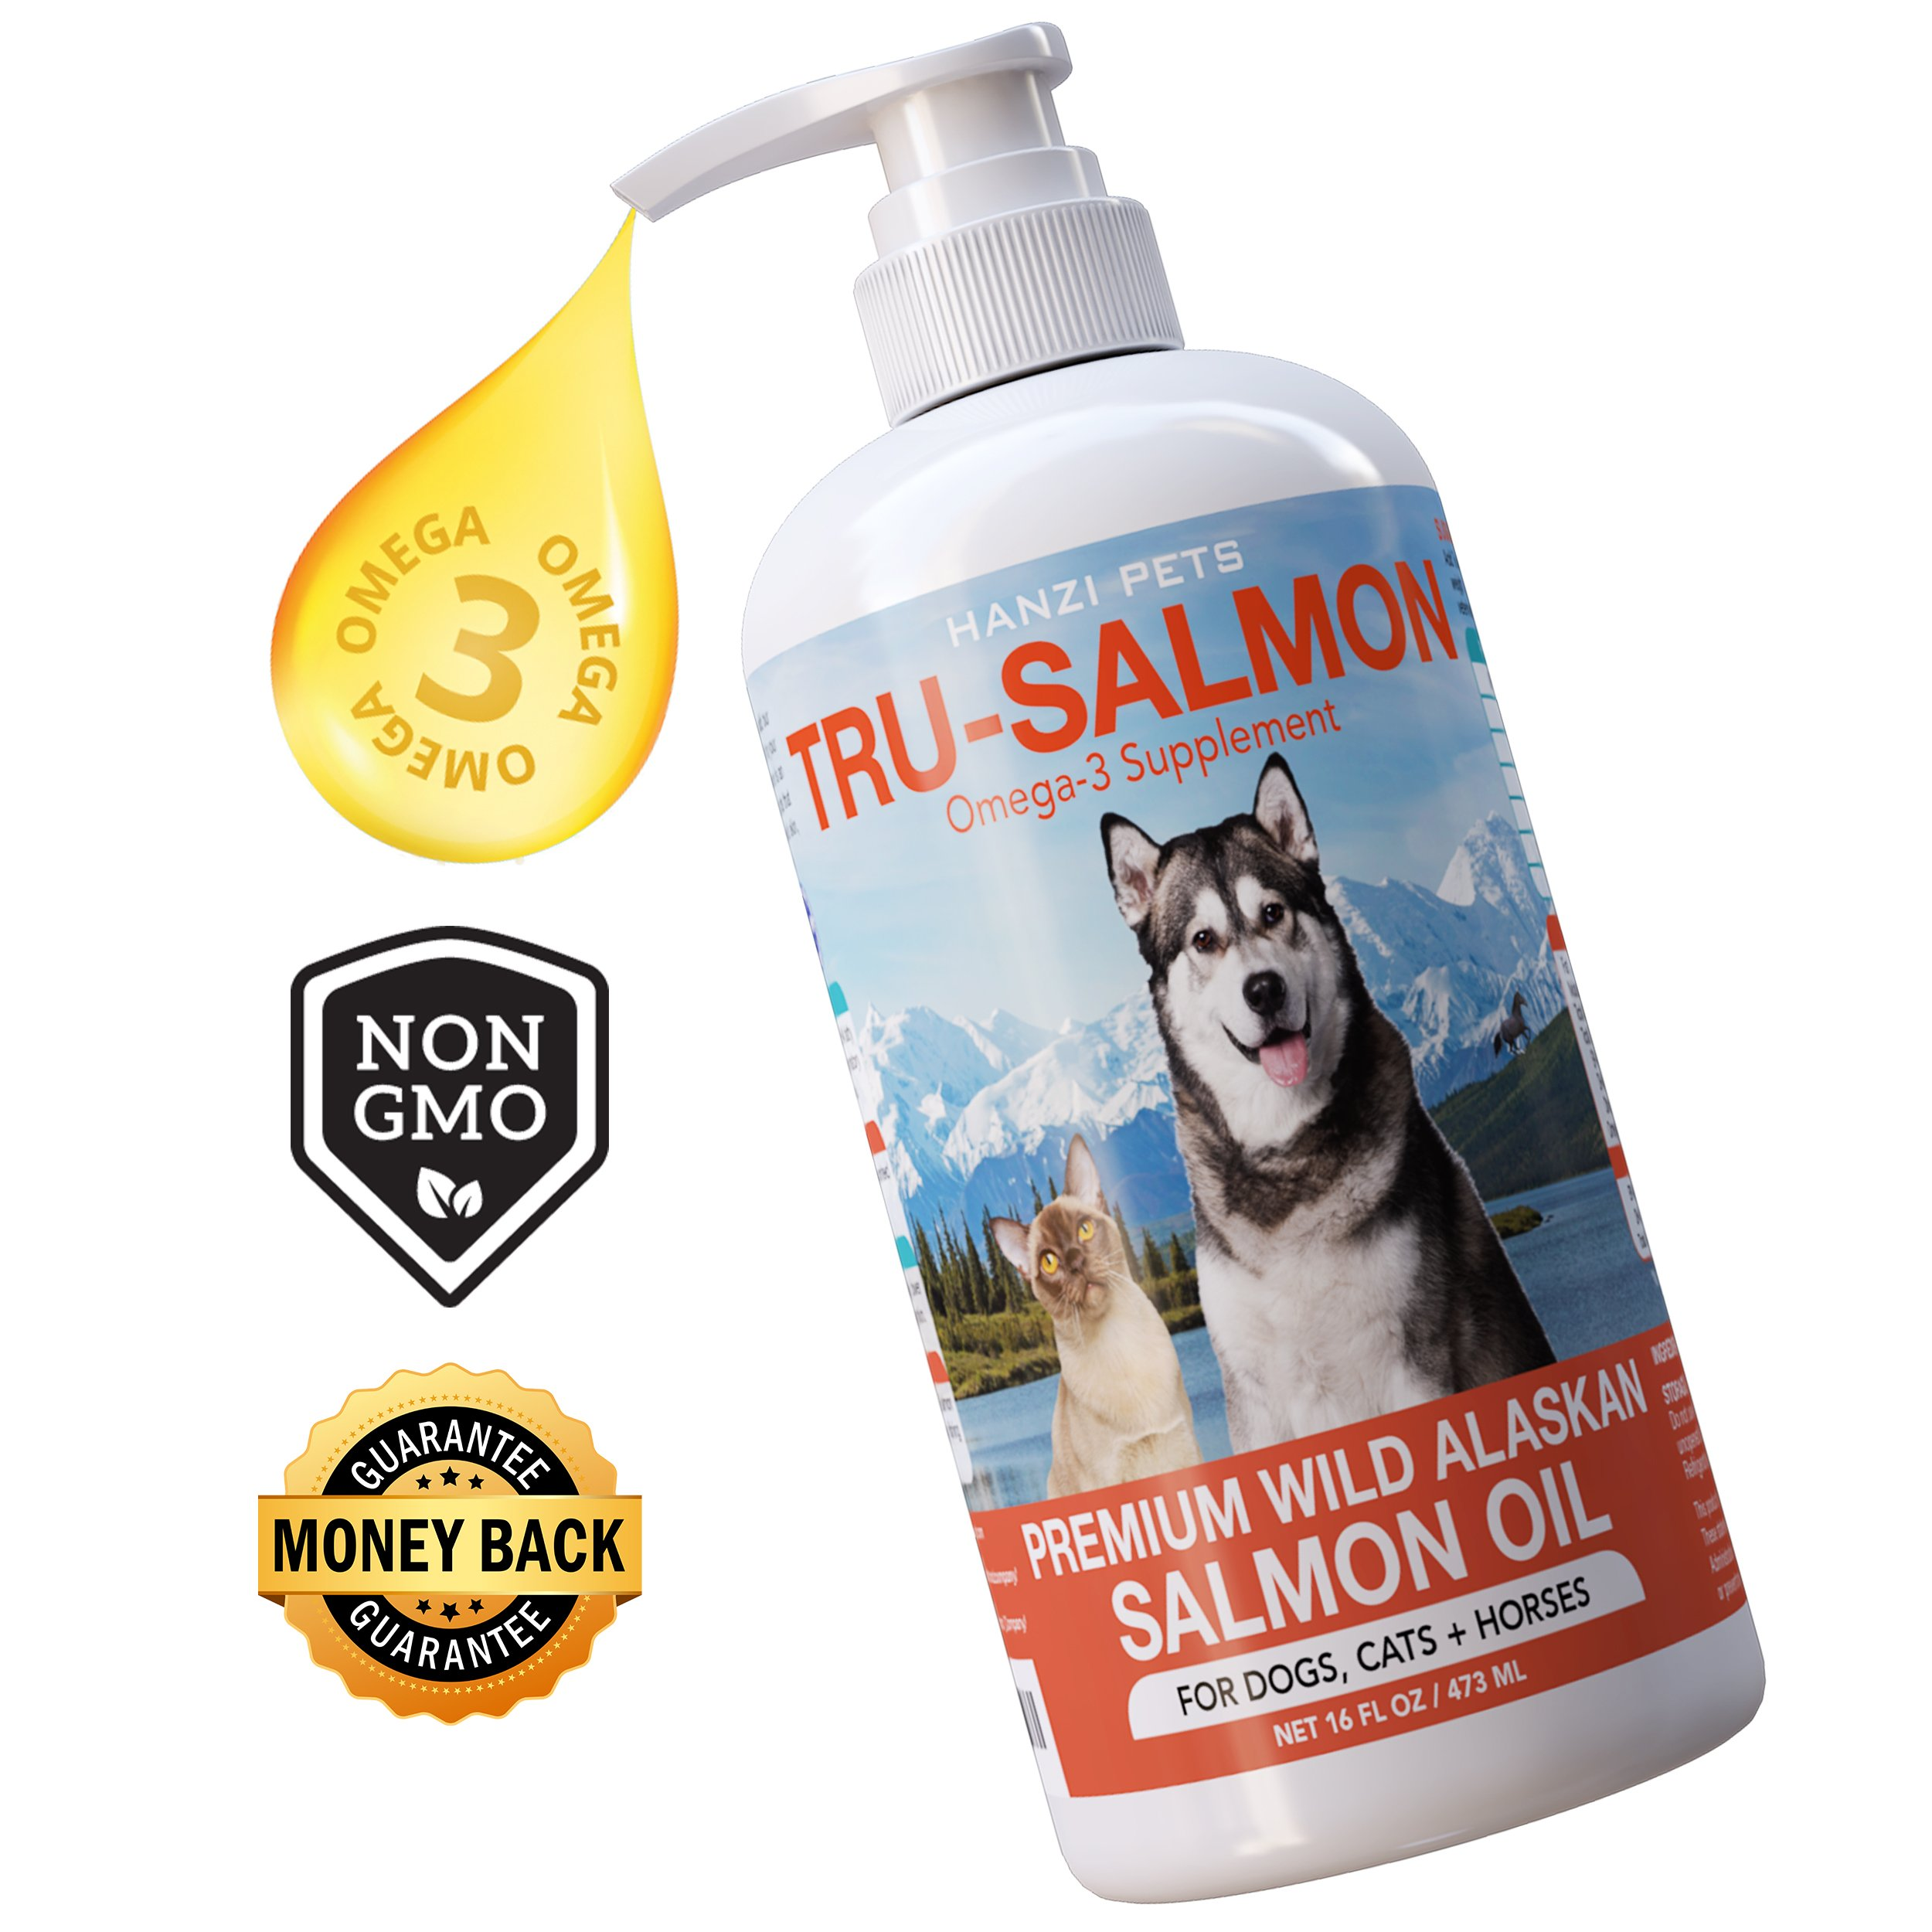 All Natural & Pure Wild Alaskan Salmon Oil for Dogs, Cats and Horses | Rich in EPA + DHA | Anti inflammatory | Supports Joint Function | Skin & Coat | Non GMO | cGMP Certified | Made in USA (16 oz)